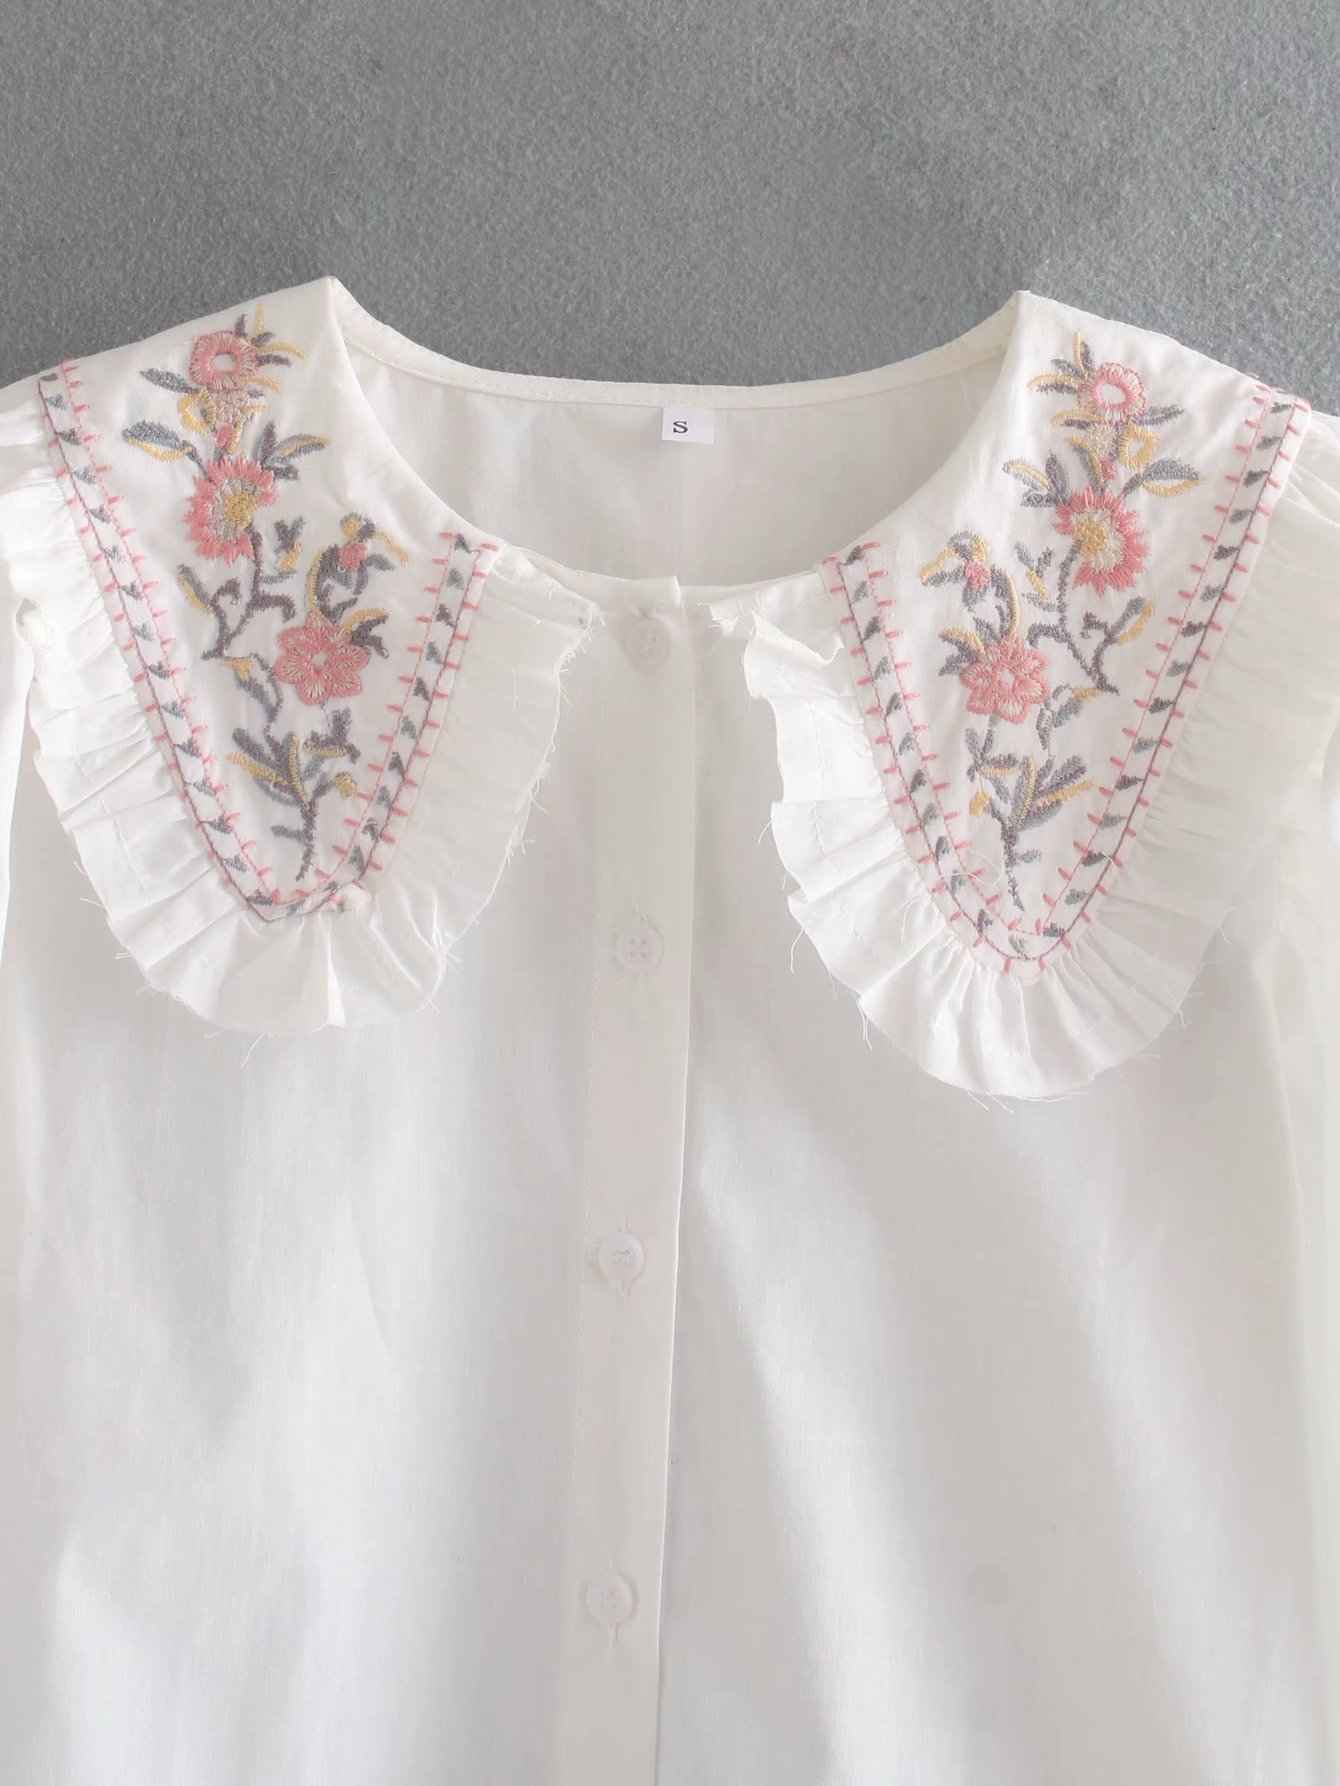 Toppies womens white blouses tops bohemian embroidery tops turn collar cute cotton shirts